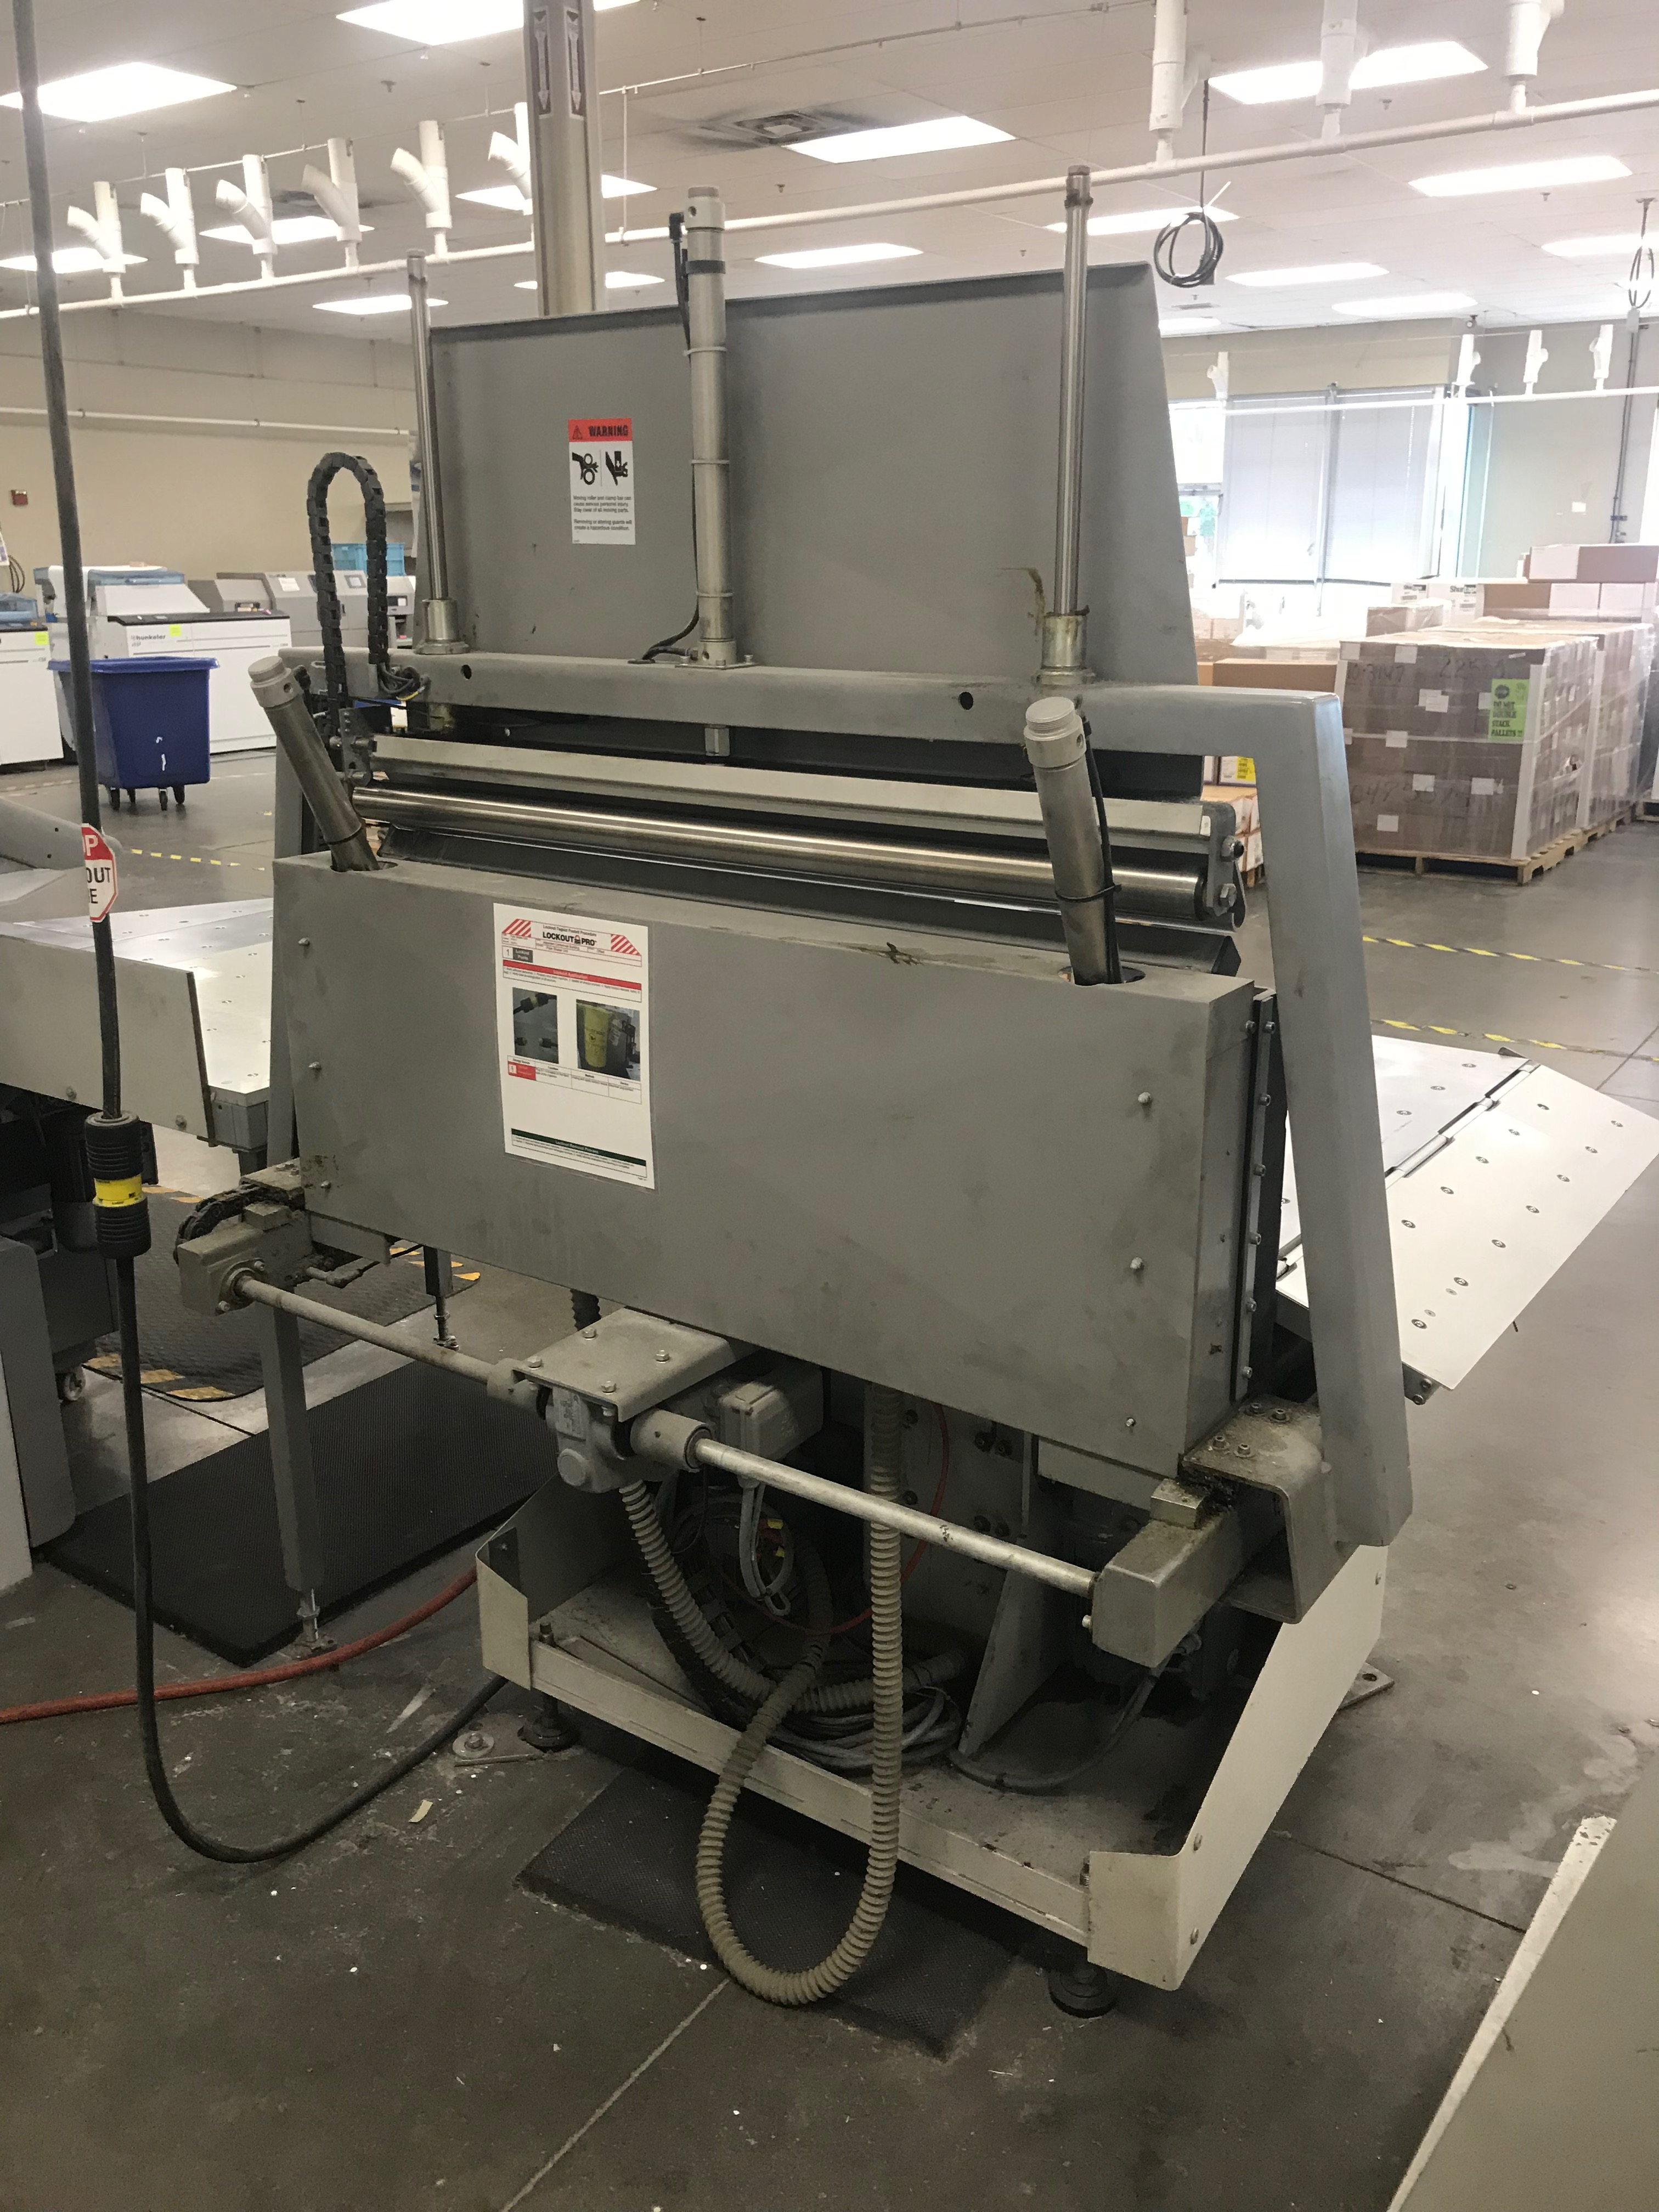 Polar-Mohr Automatic Jogger, Model# RA-4, Serial# 6982037, 3 Phase, 220 V, 60 Hz, 61 in wide x 51 in - Image 3 of 4